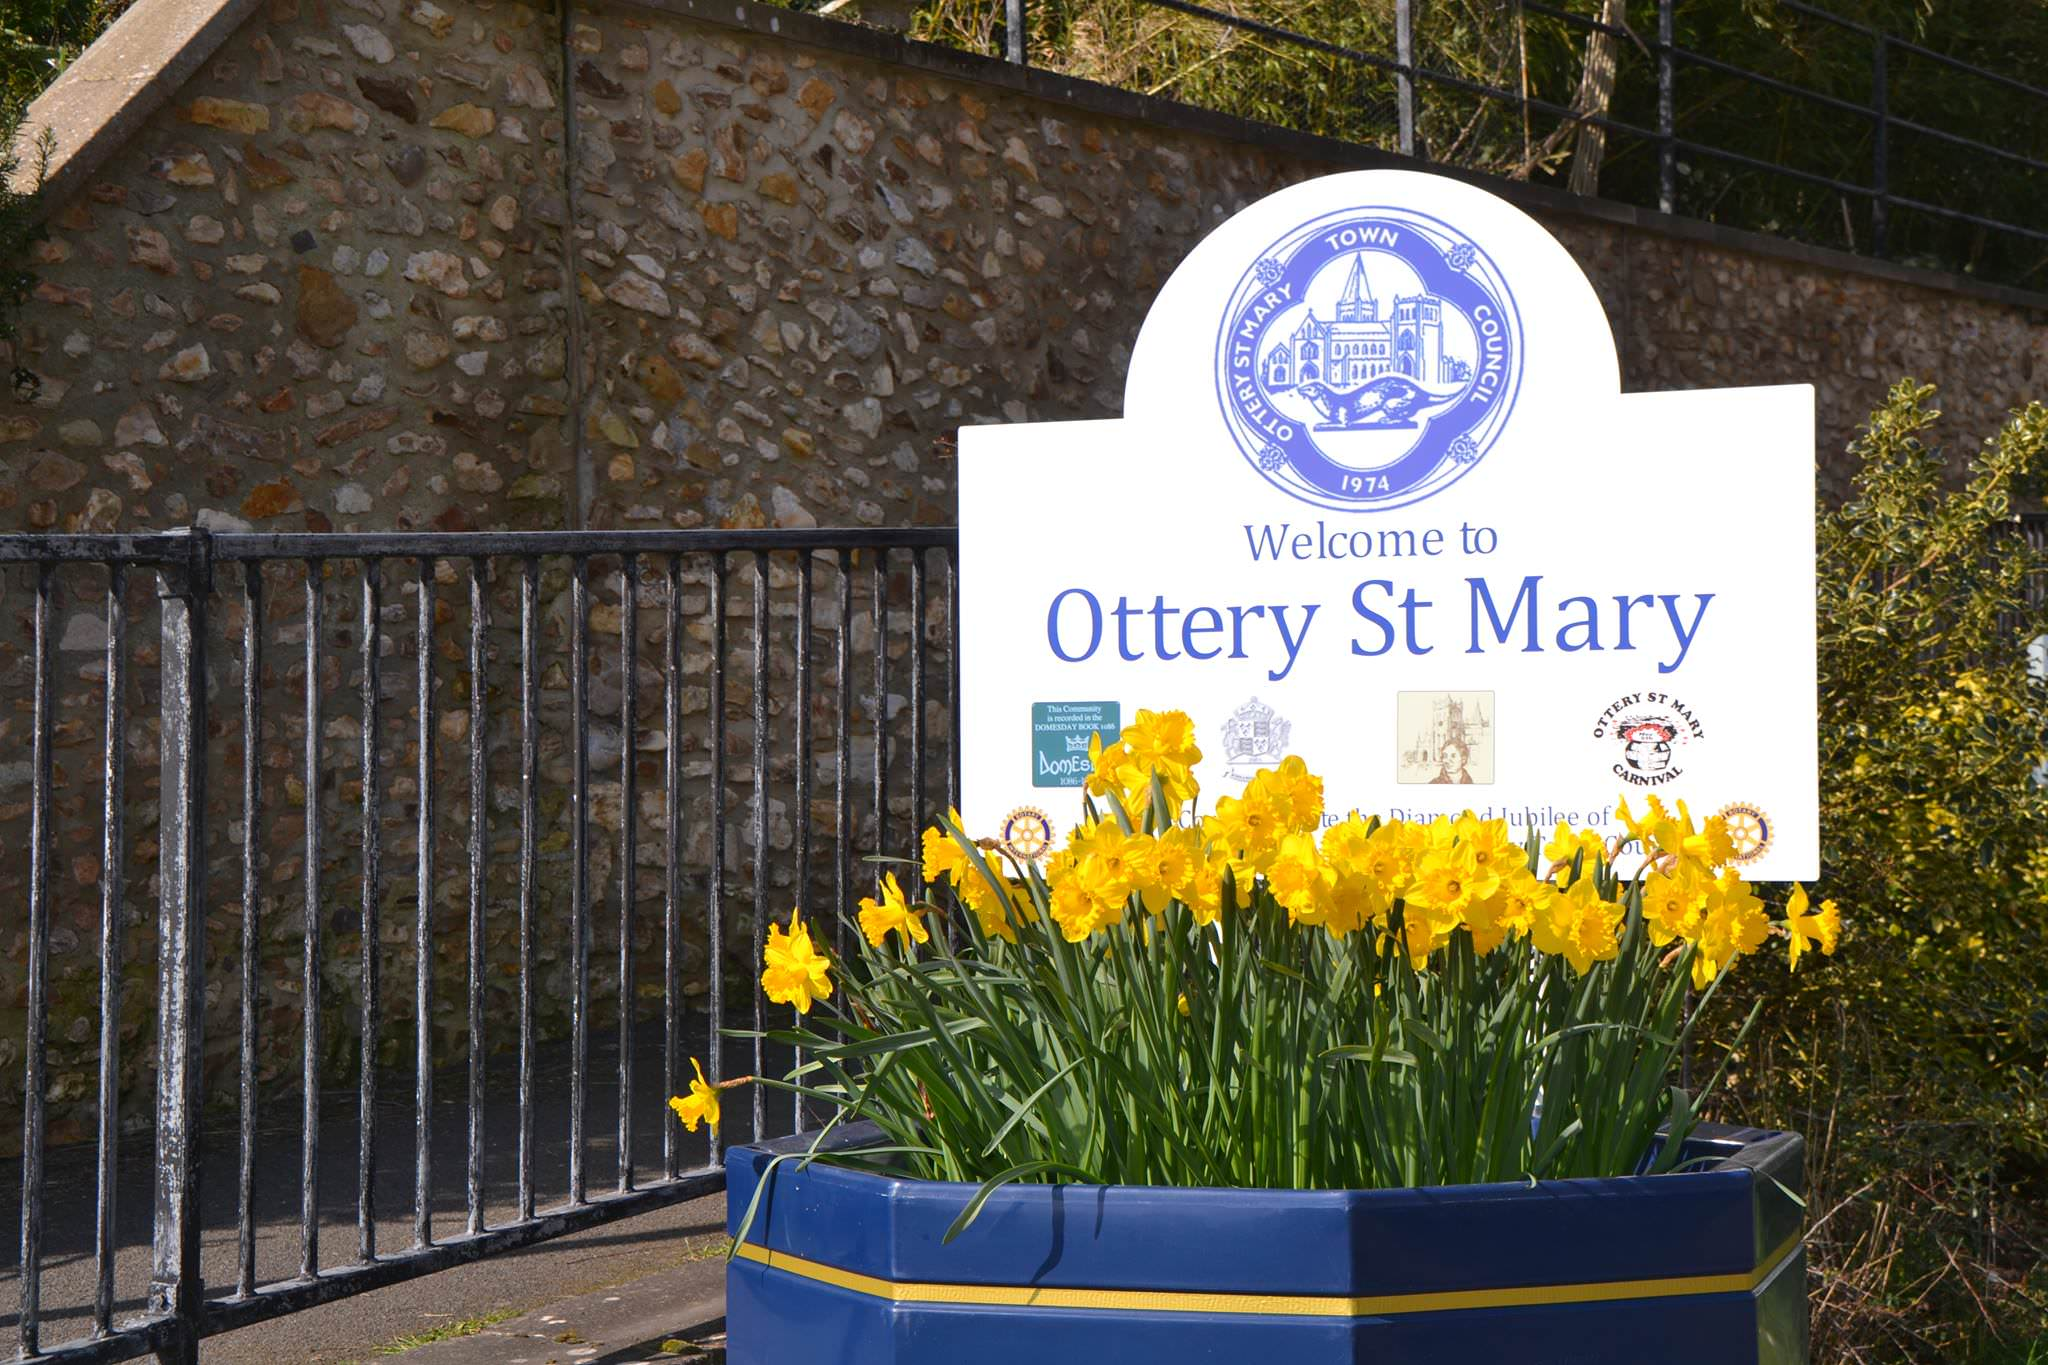 Welcome to Ottery St Mary in East Devon